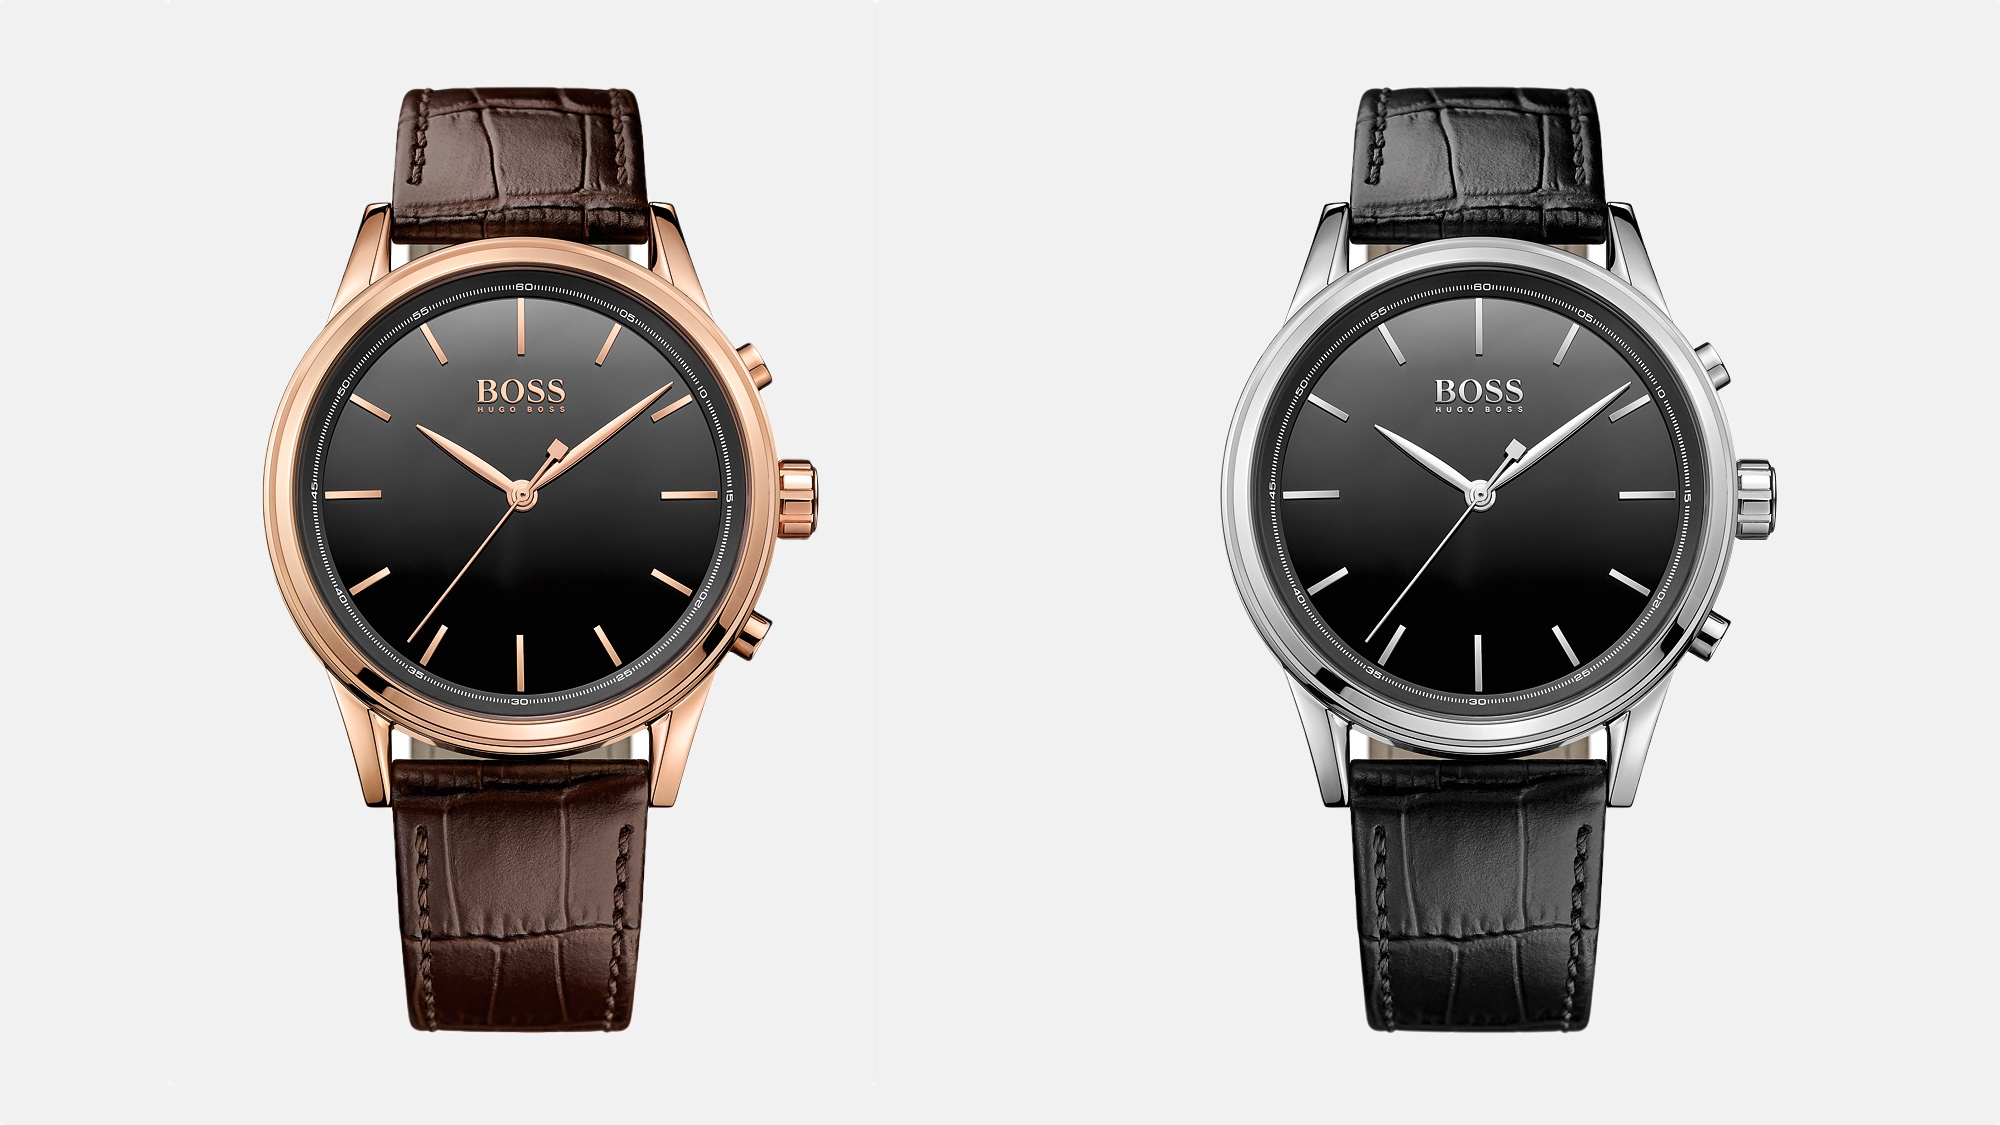 Hugo Boss Smart Classic watches unveiled